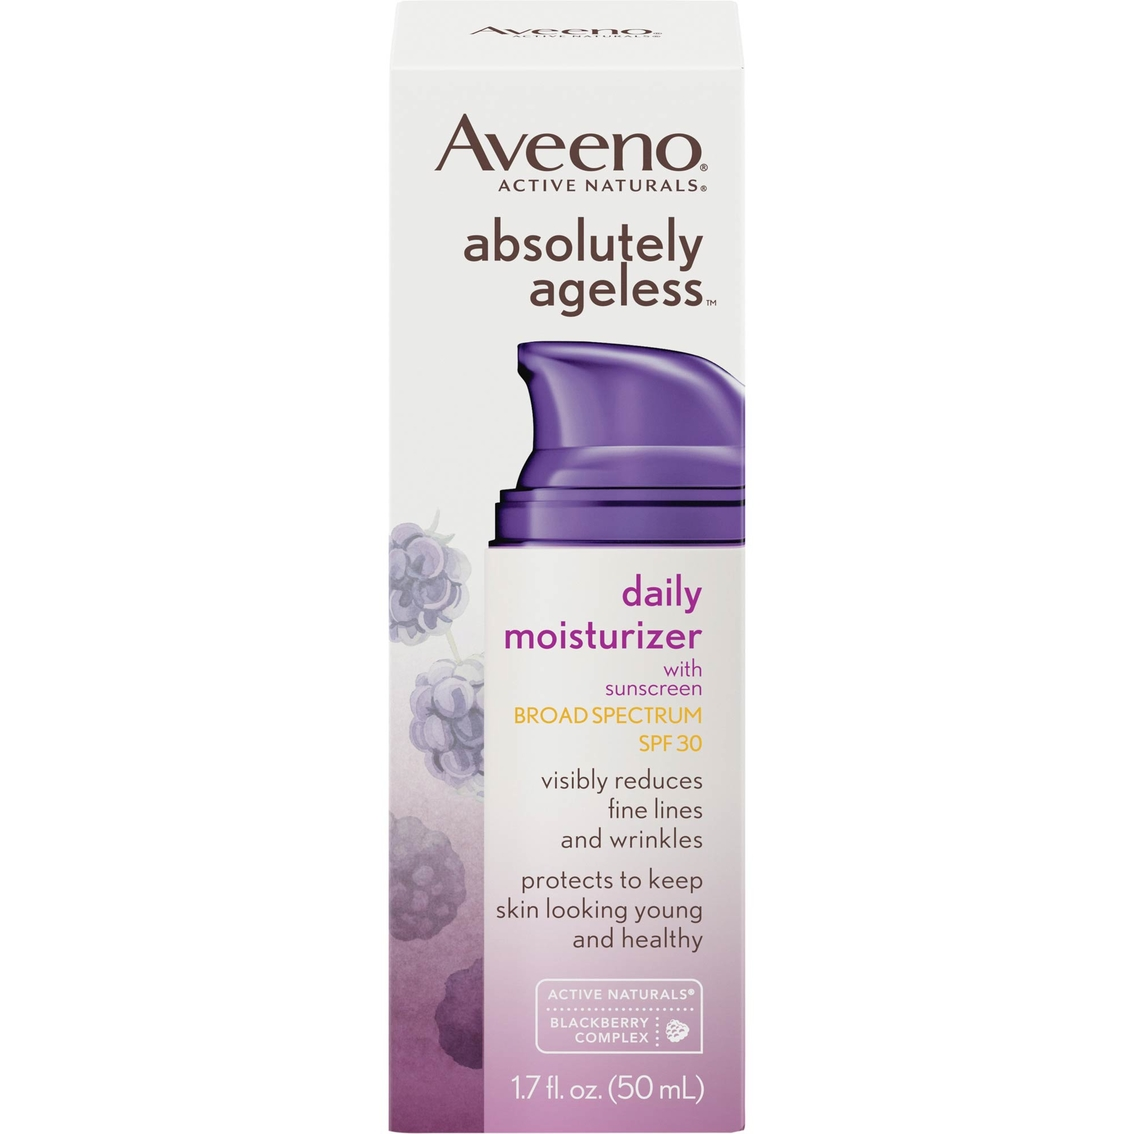 Aveeno Absolutely Ageless Daily Moisturizer With Sunscreen Broad Spectrum  Spf 30   Moisturizers   Beauty & Health   Shop The Exchange